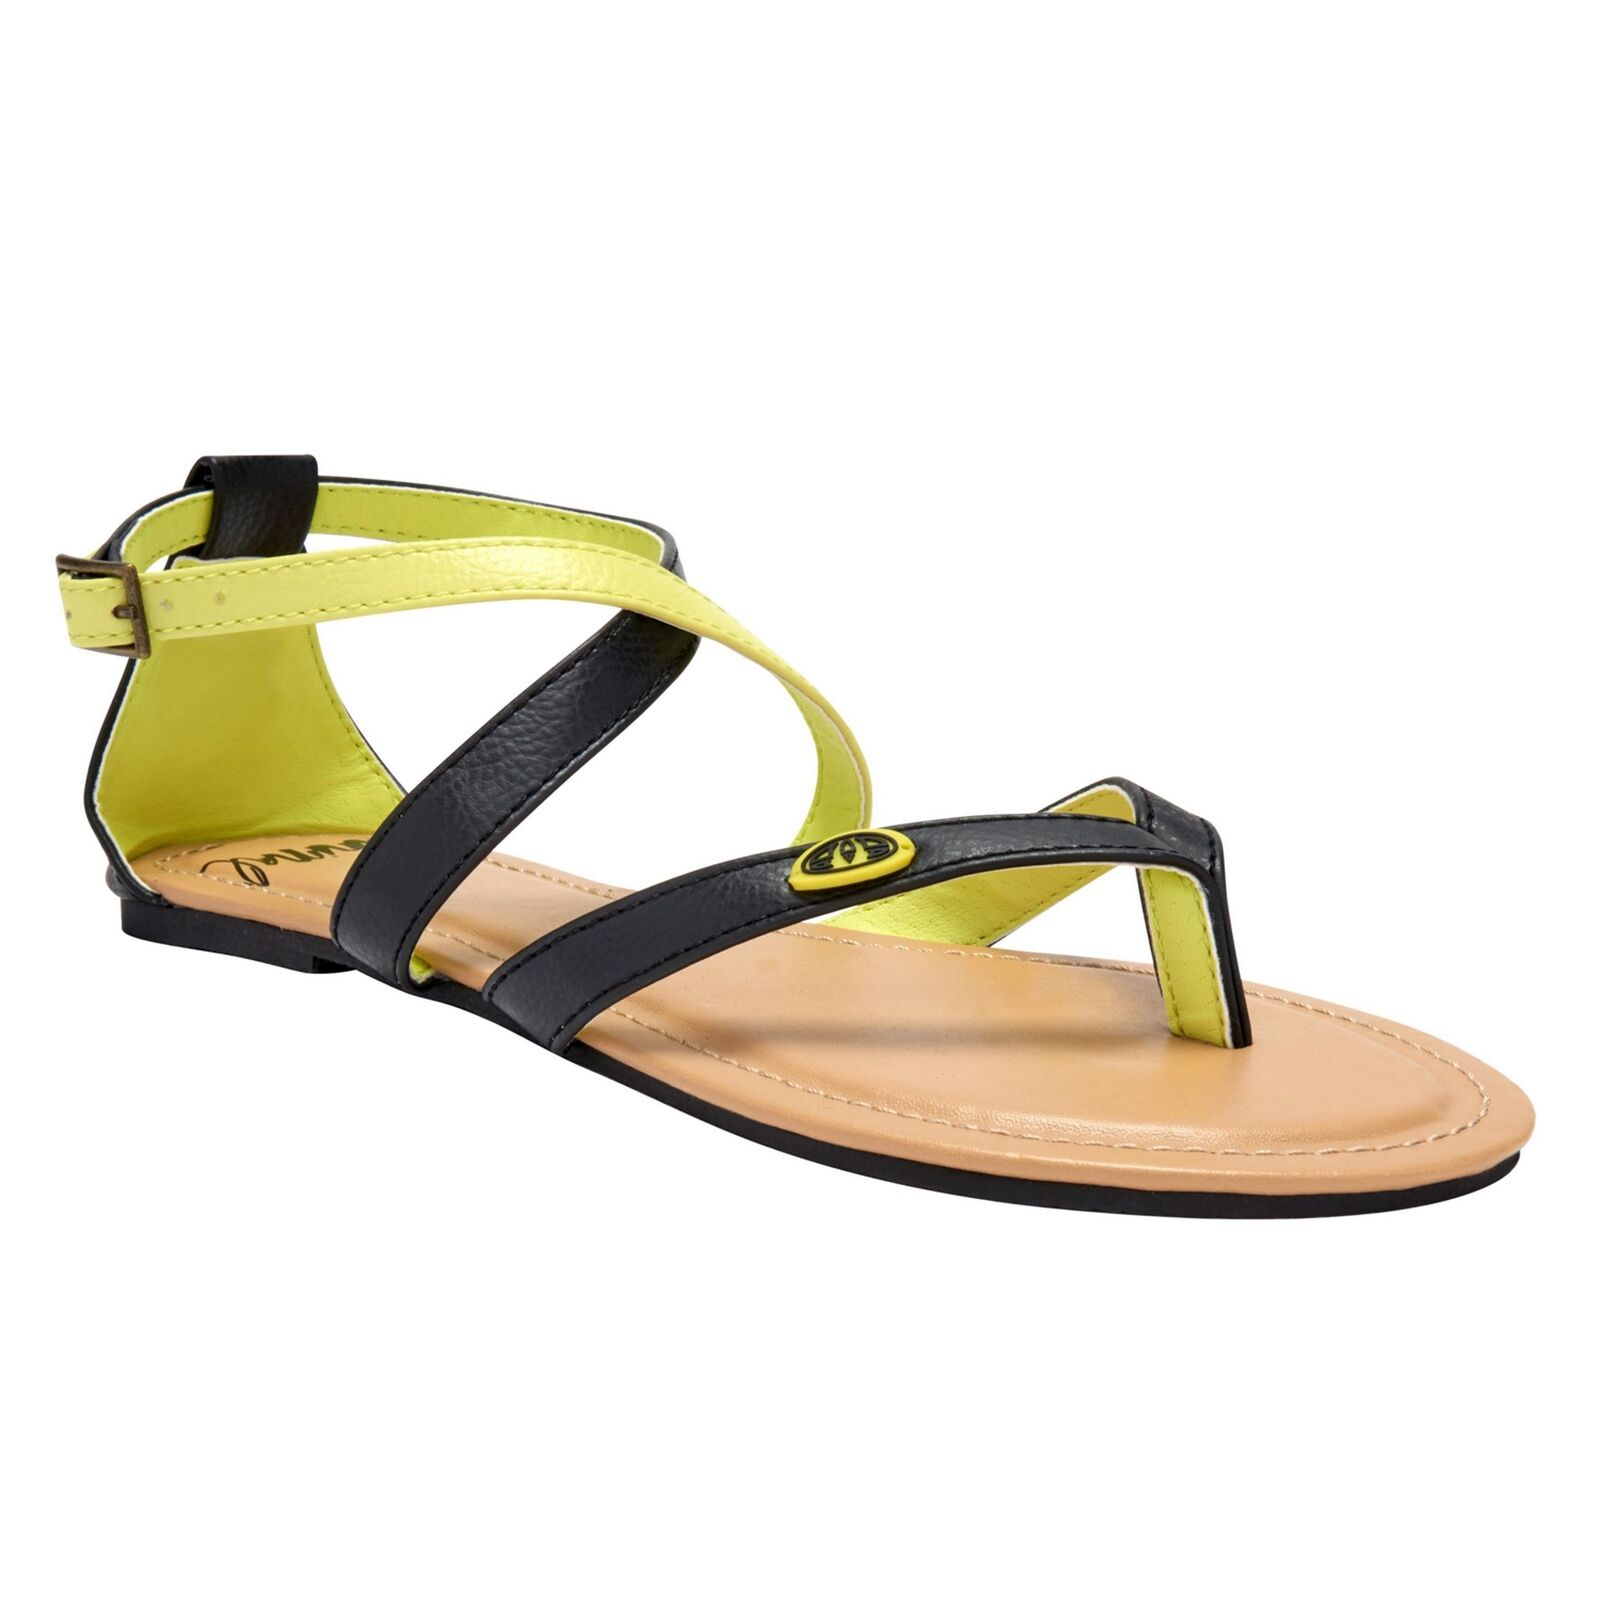 ANIMAL NEW Women's Napa Flip BNWT Flops Yellow BNWT Flip ad2fa4